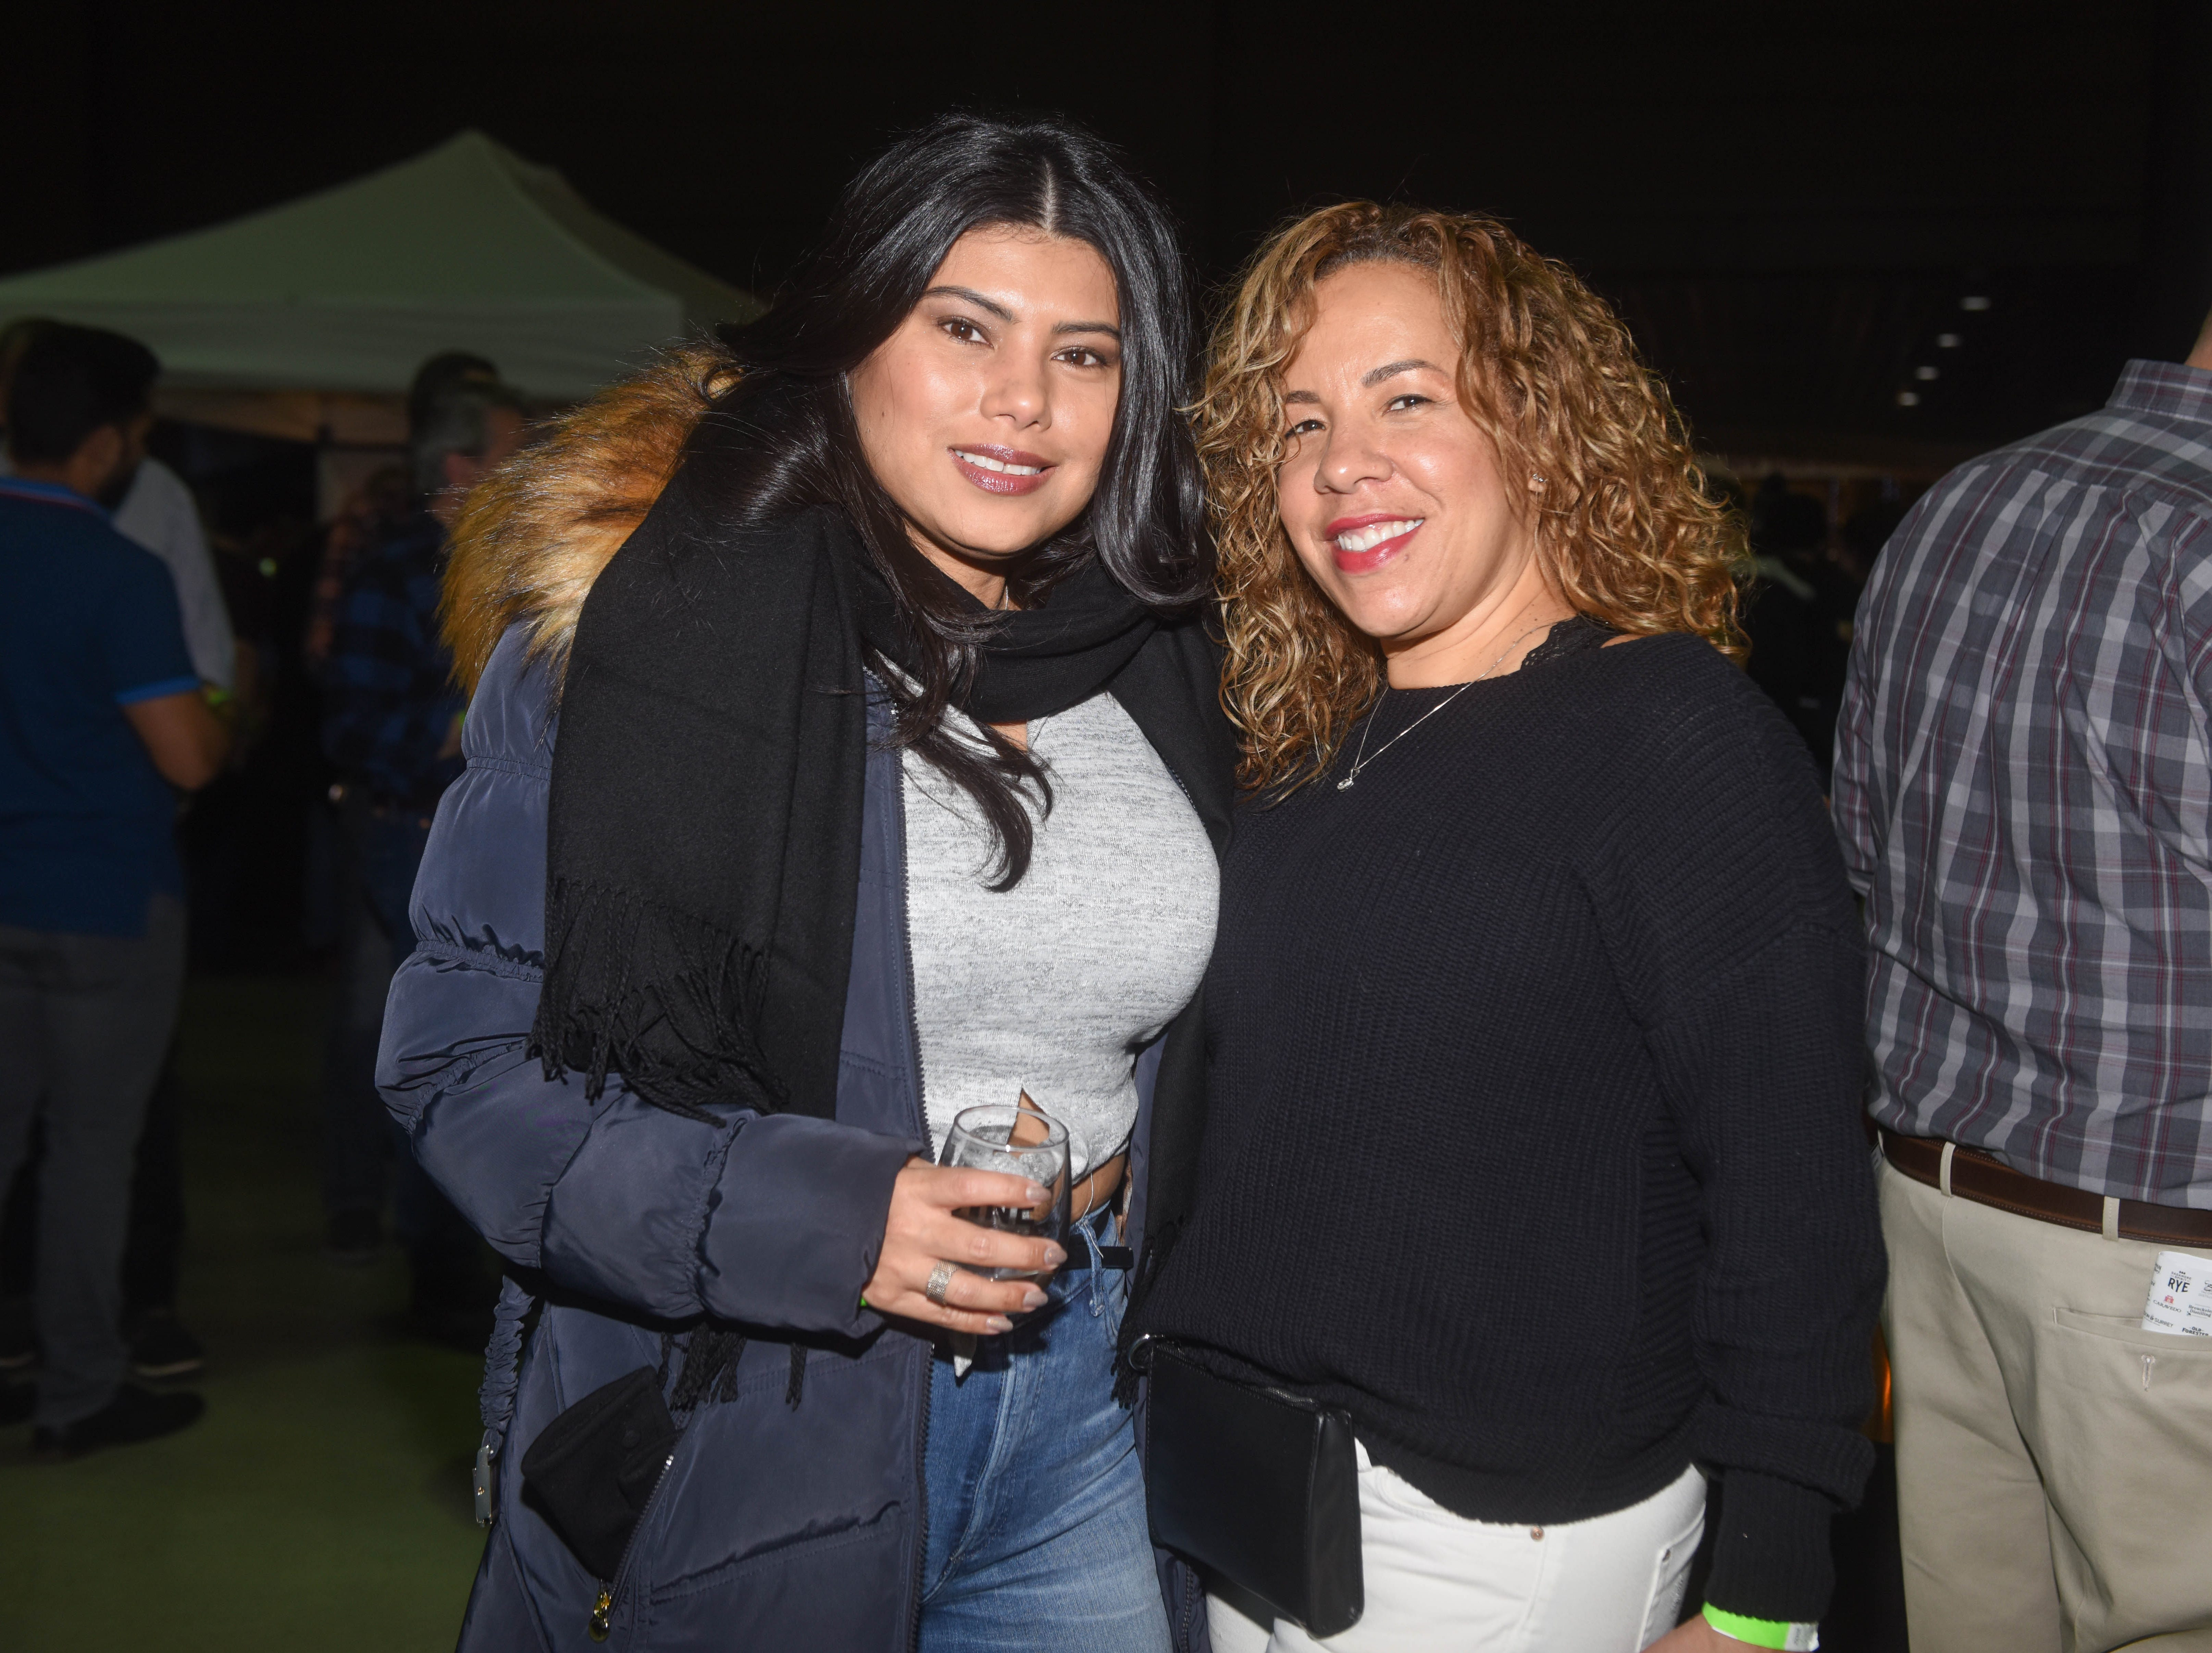 Fey and Ofe. Jersey City Whiskey Fest was held at Harborside Atrium. The event featured over 100 styles of whiskey and spirits. 02/01/2019